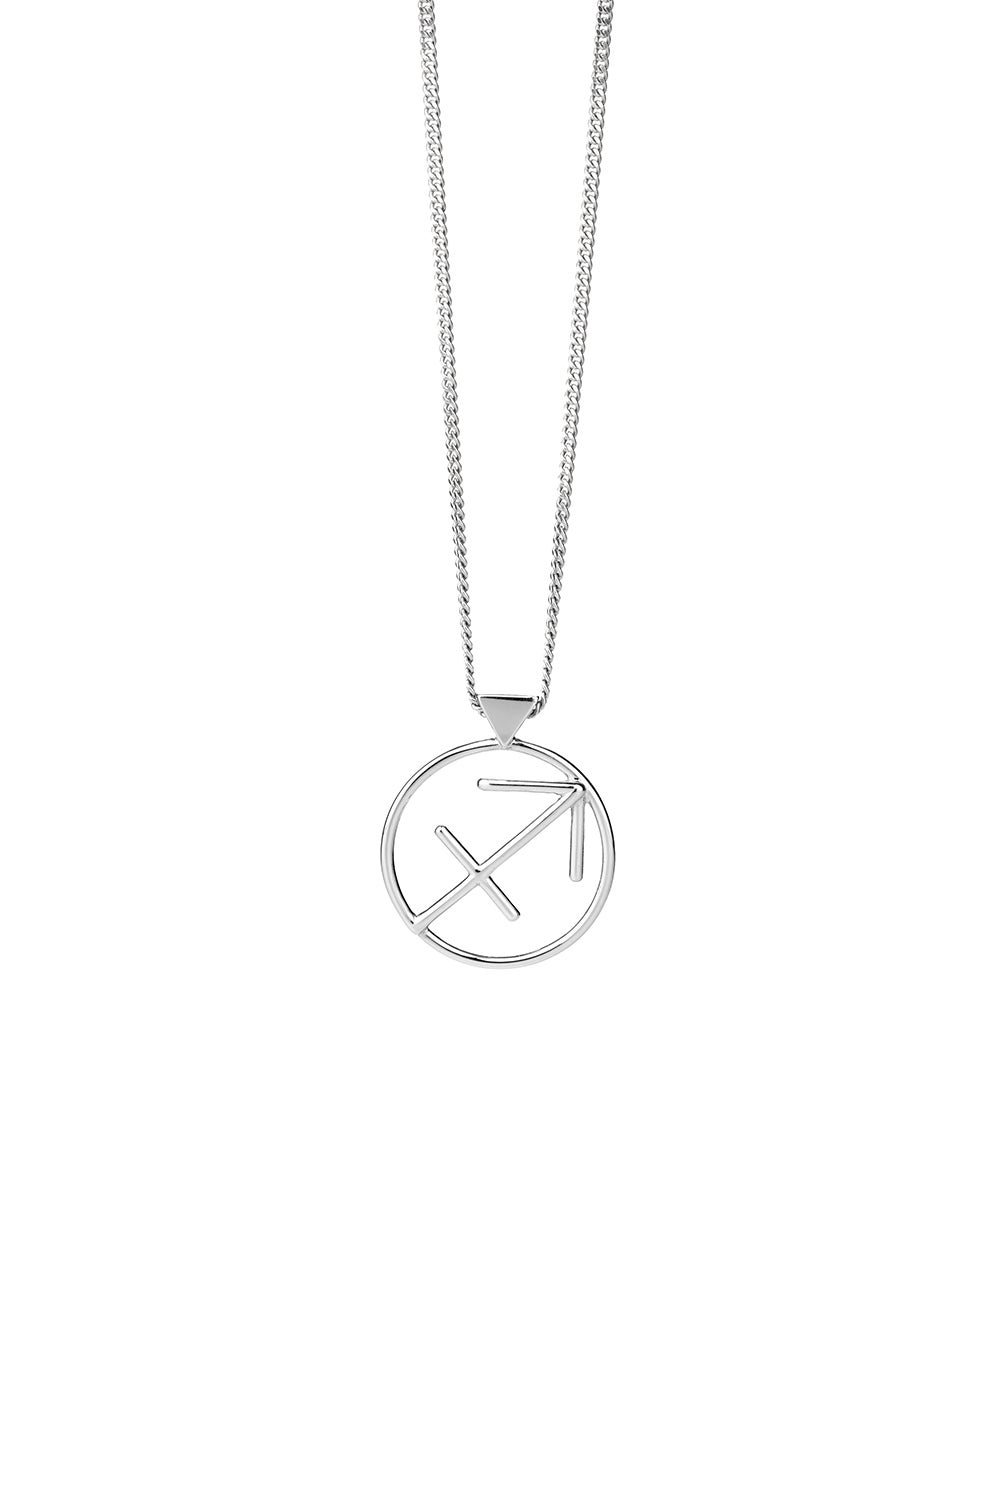 Sagittarius Necklace Silver